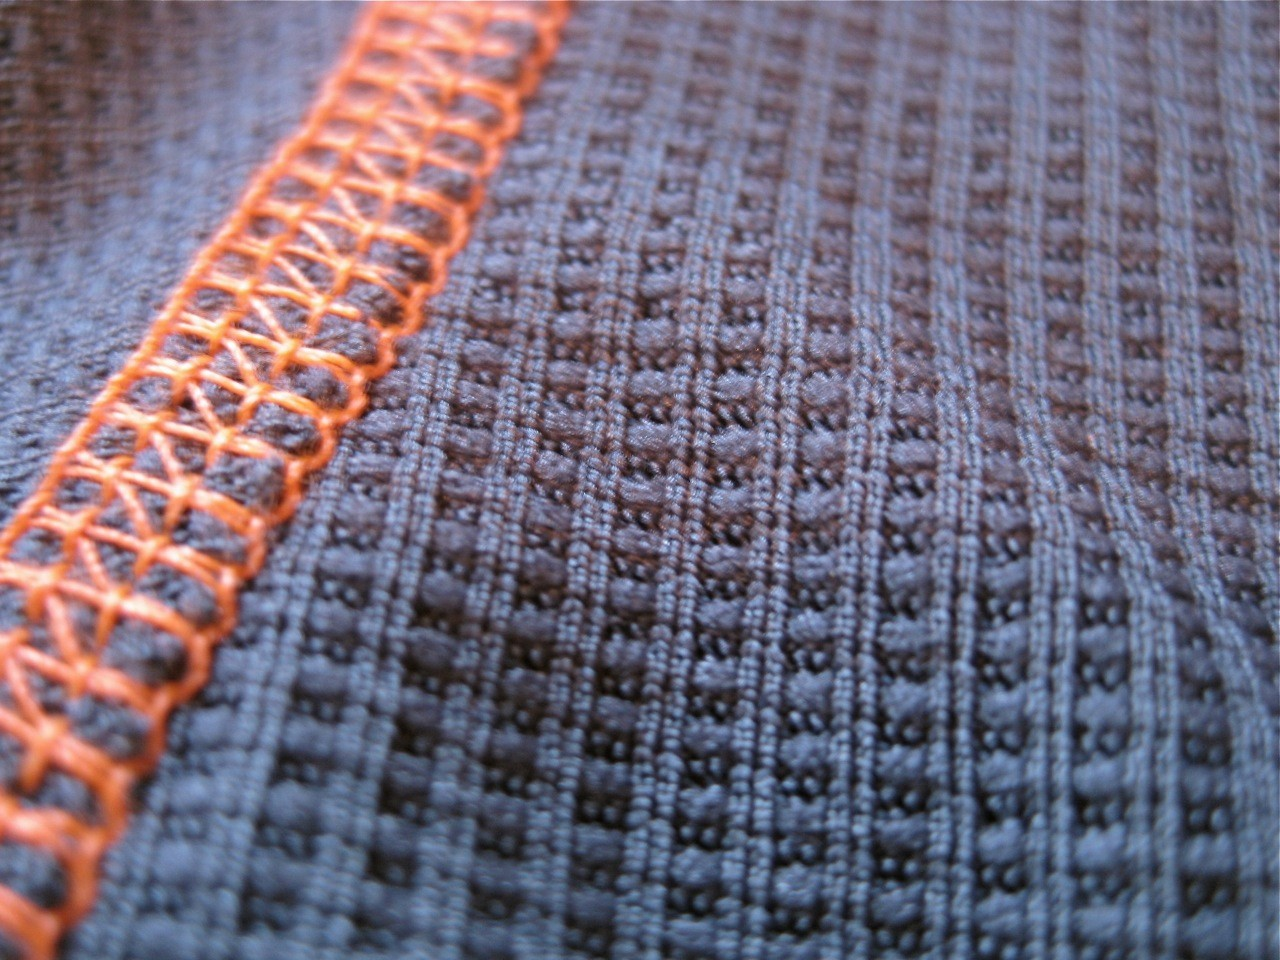 Soft Merino wool on the inside, with synthetic material on the outer shell.